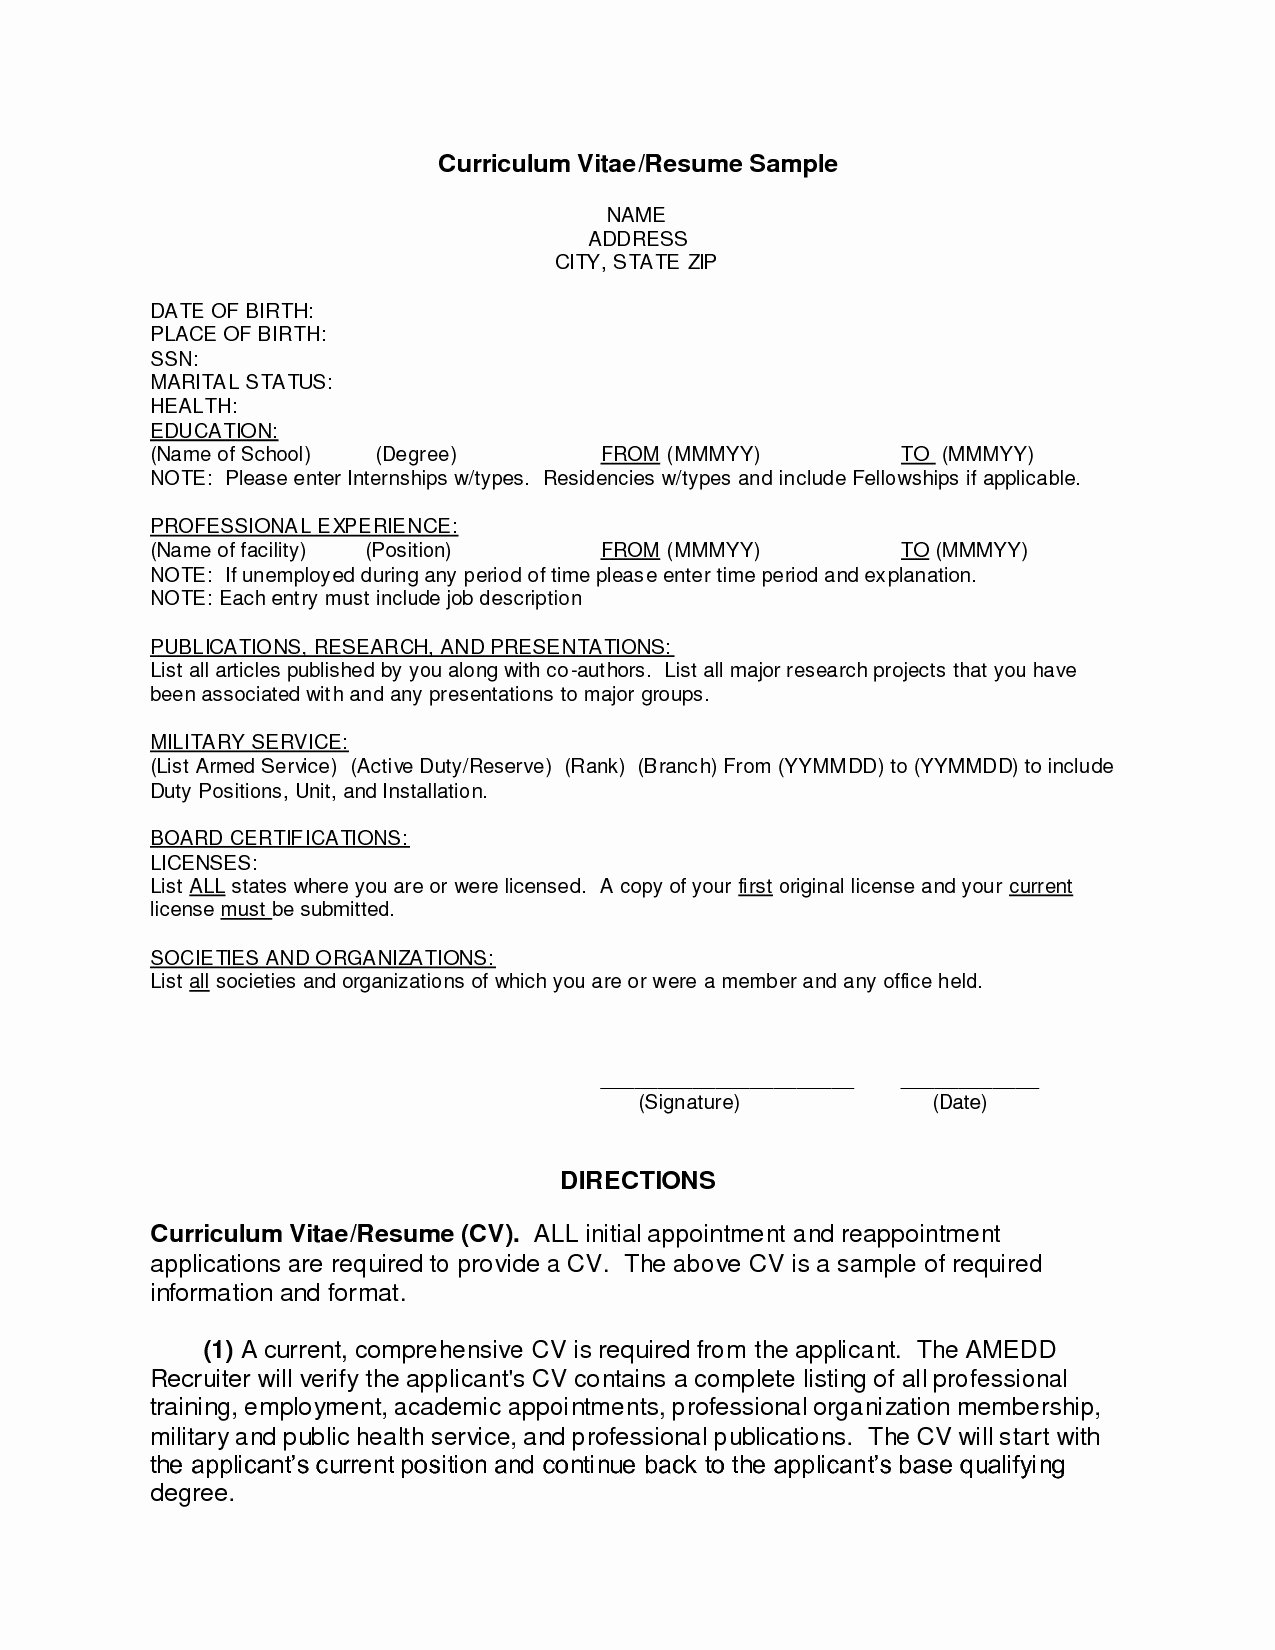 First Job Resume Template Example A Resume for First Job